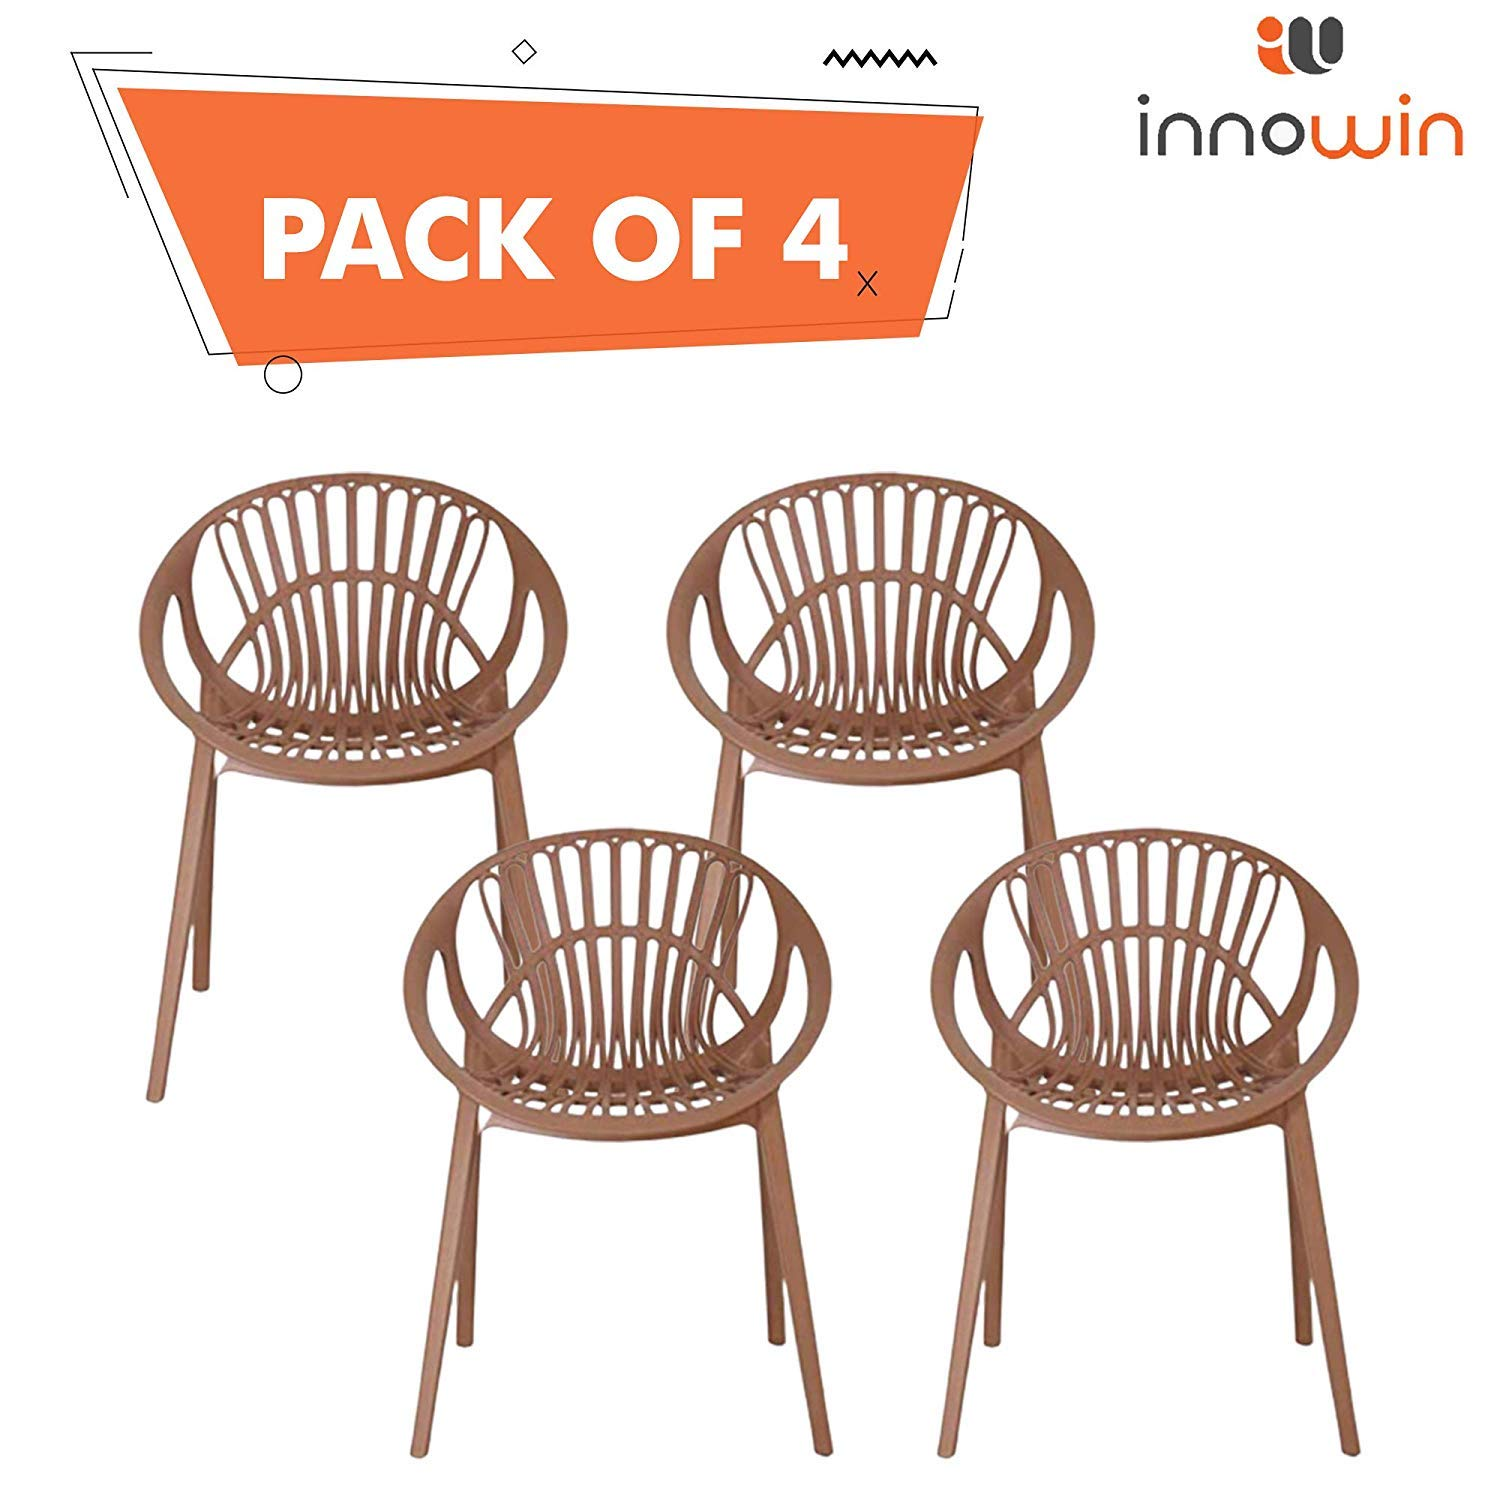 Innowin Olive Garden Chairs Indoor Outdoor Use Chair Chairs For Restaurants Chairs For Dining Room Cafe Set Of 4 Brown Amazon In Home Kitchen